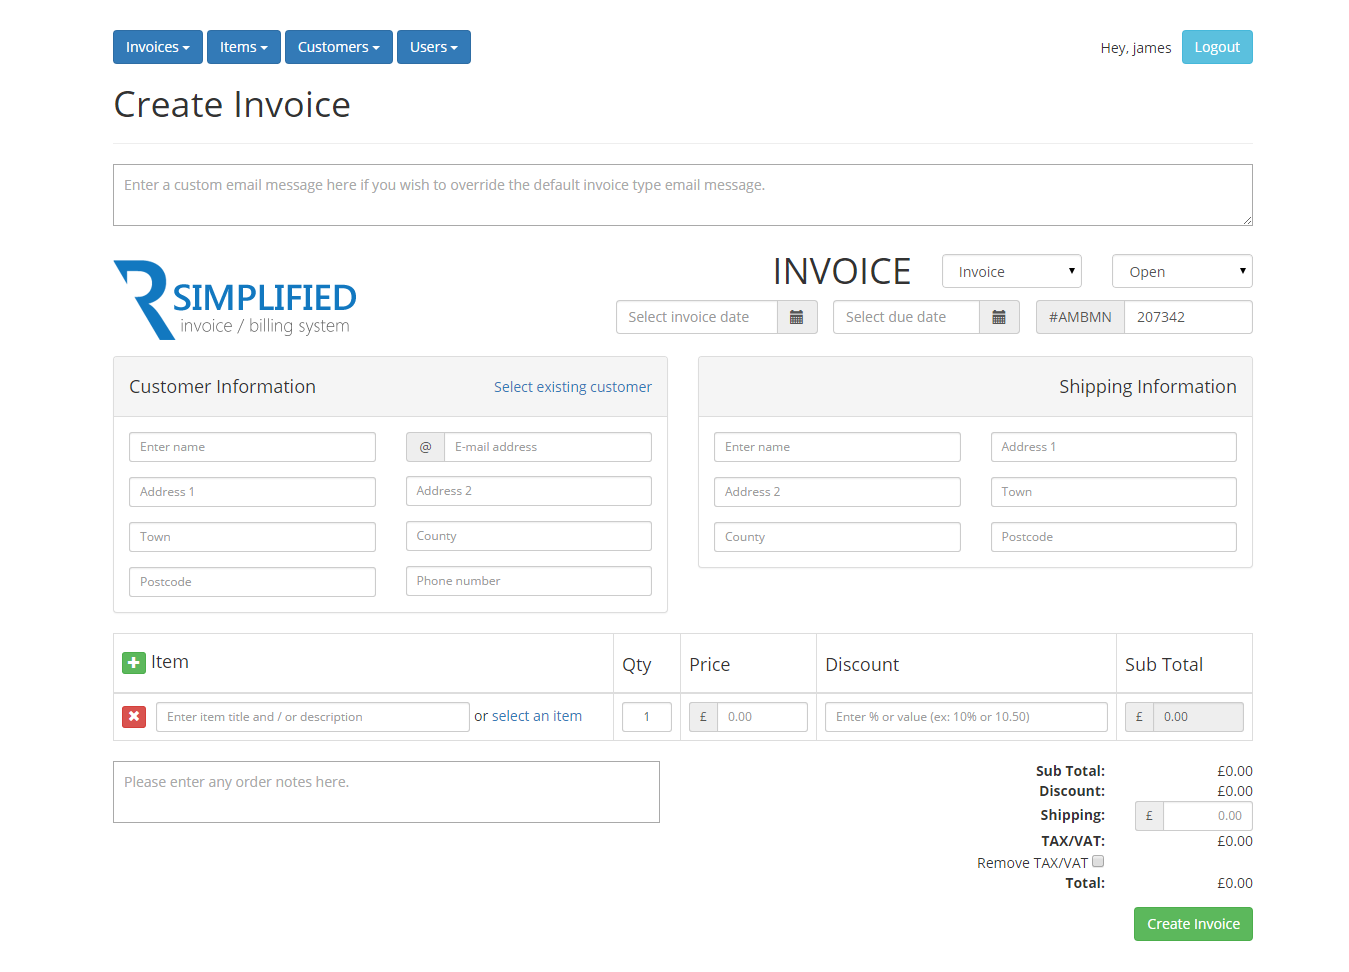 Opposenewapstandardsus  Gorgeous Simplified Php Invoice  Billing System By Rebootdigitaluk  With Glamorous  Createinvoicepng  With Easy On The Eye Invoice Rejection Letter Also Invoice Of New Cars In Addition Tnt E Invoice And Invoice Format Free As Well As Invoice Access Additionally Zoho Crm Invoice From Codecanyonnet With Opposenewapstandardsus  Glamorous Simplified Php Invoice  Billing System By Rebootdigitaluk  With Easy On The Eye  Createinvoicepng  And Gorgeous Invoice Rejection Letter Also Invoice Of New Cars In Addition Tnt E Invoice From Codecanyonnet